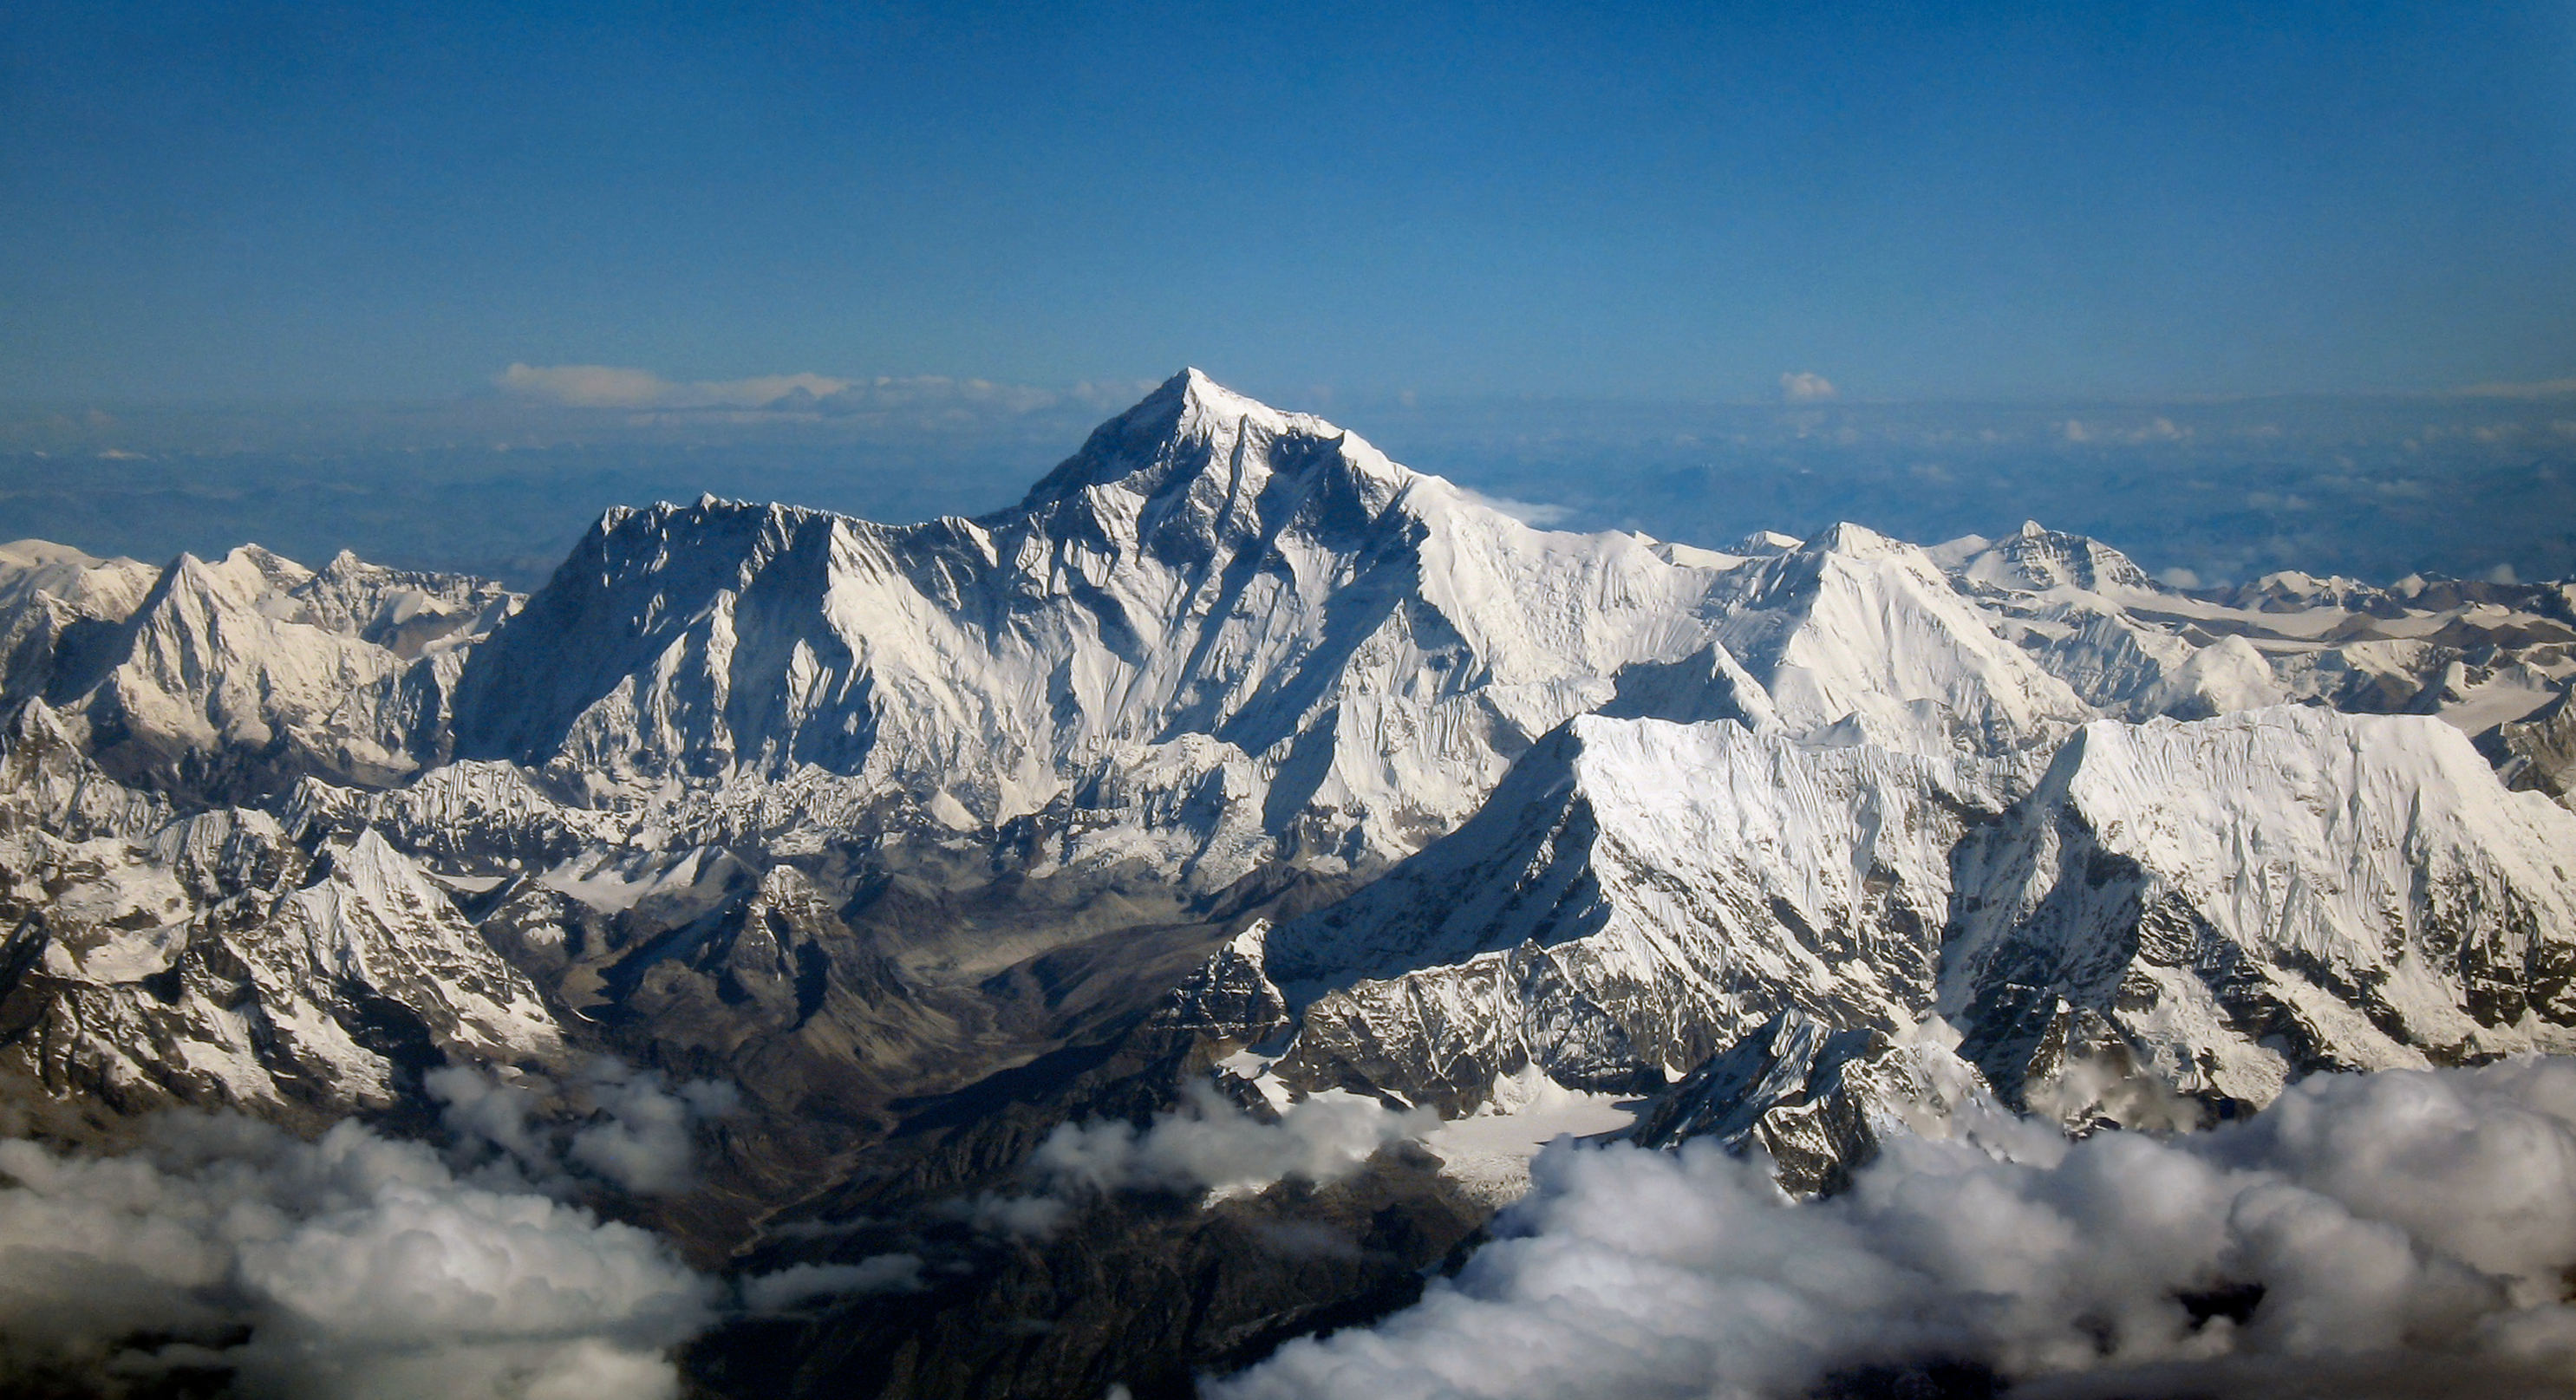 Everest 2018 - That's a Wrap